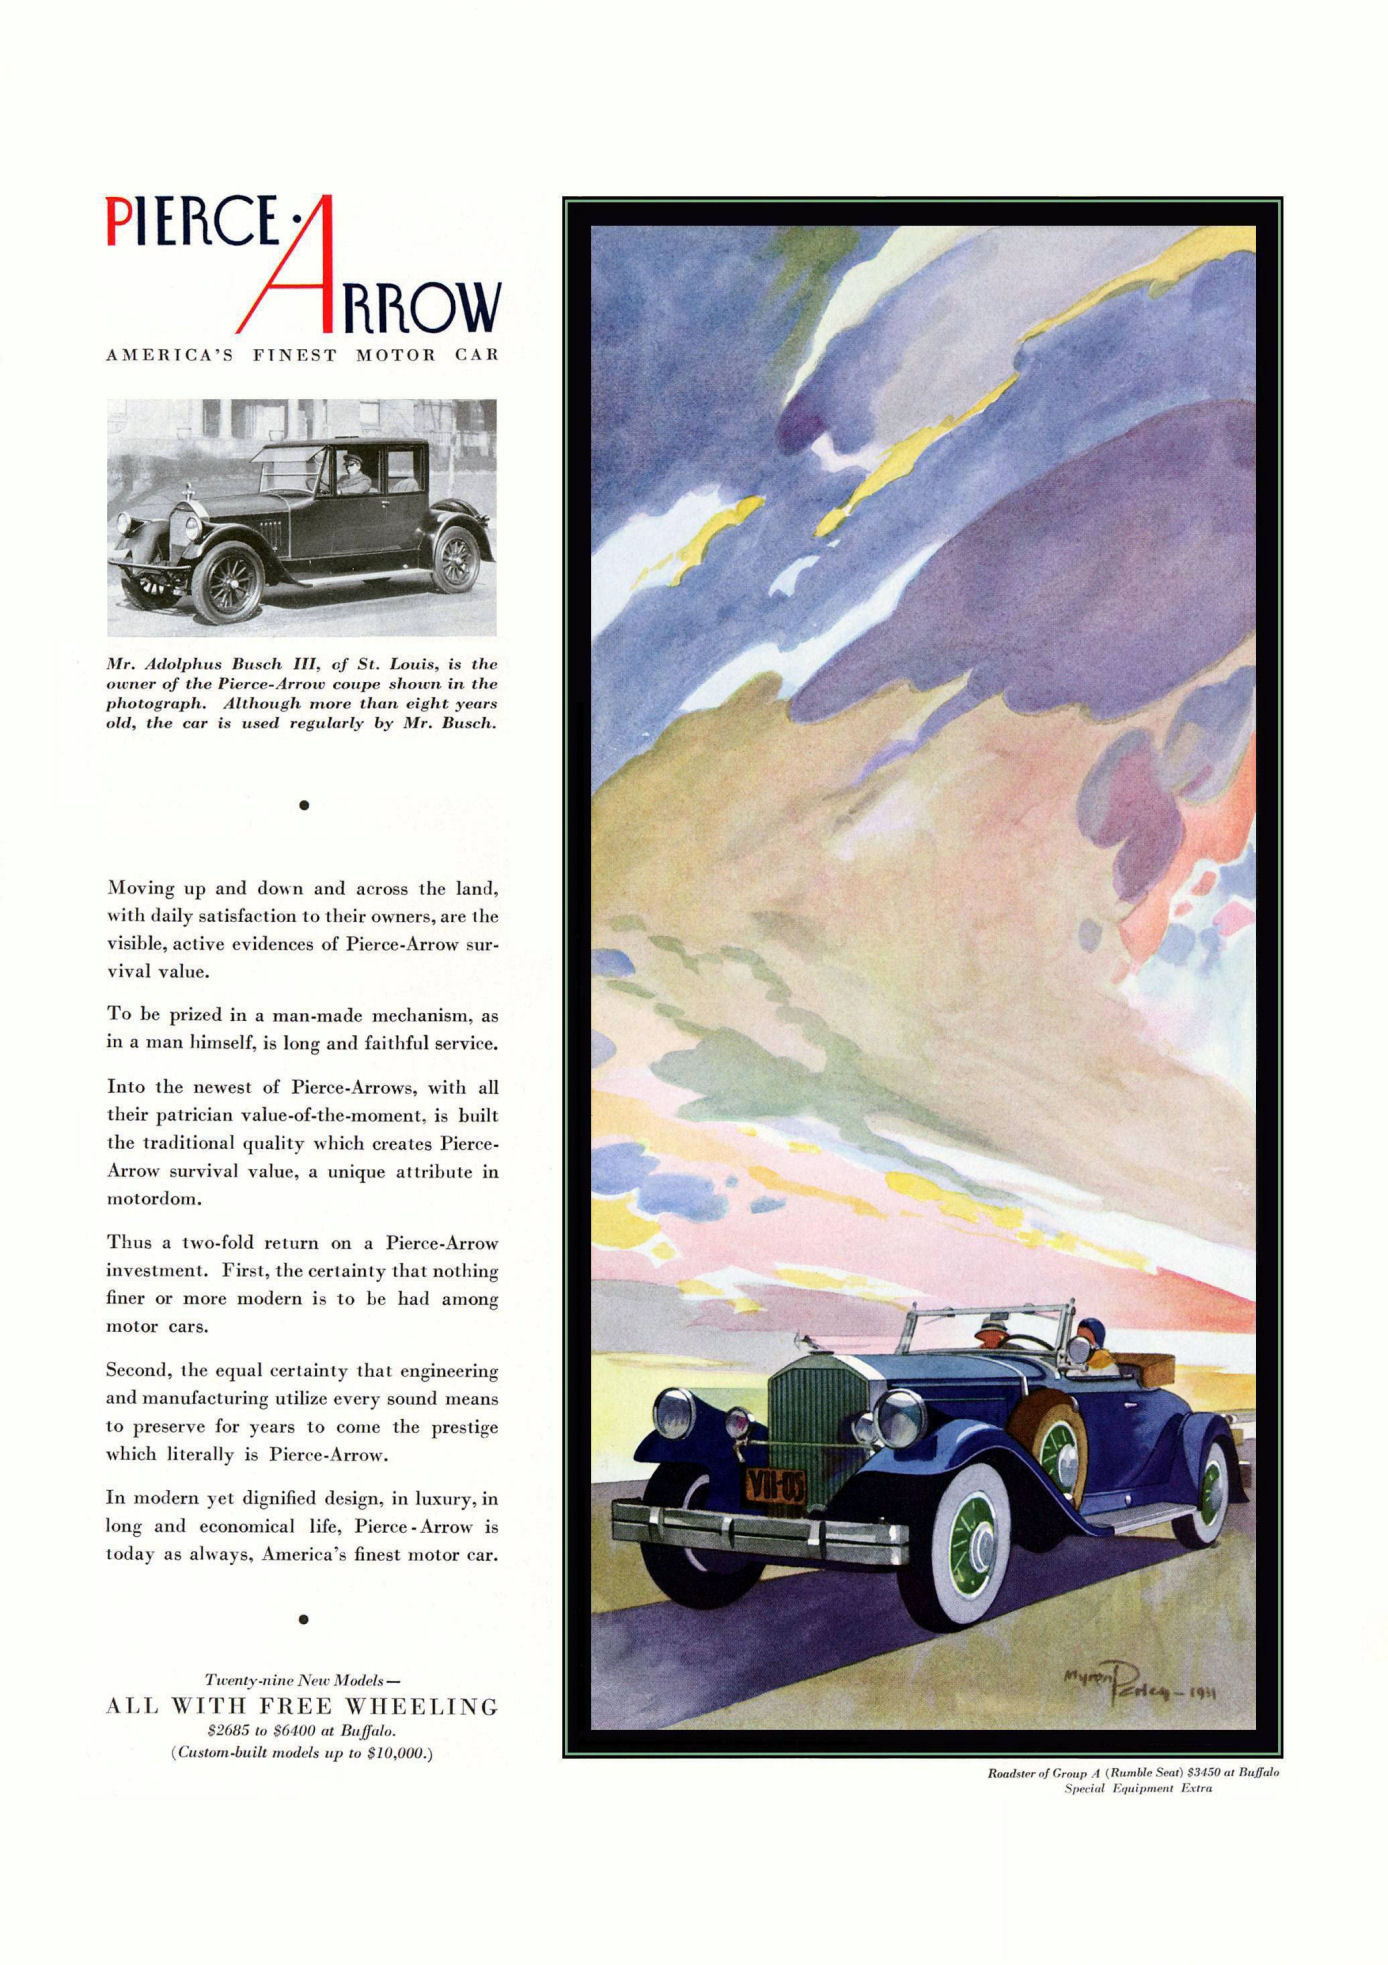 Directory Index: Pierce-Arrow Ads/1930s